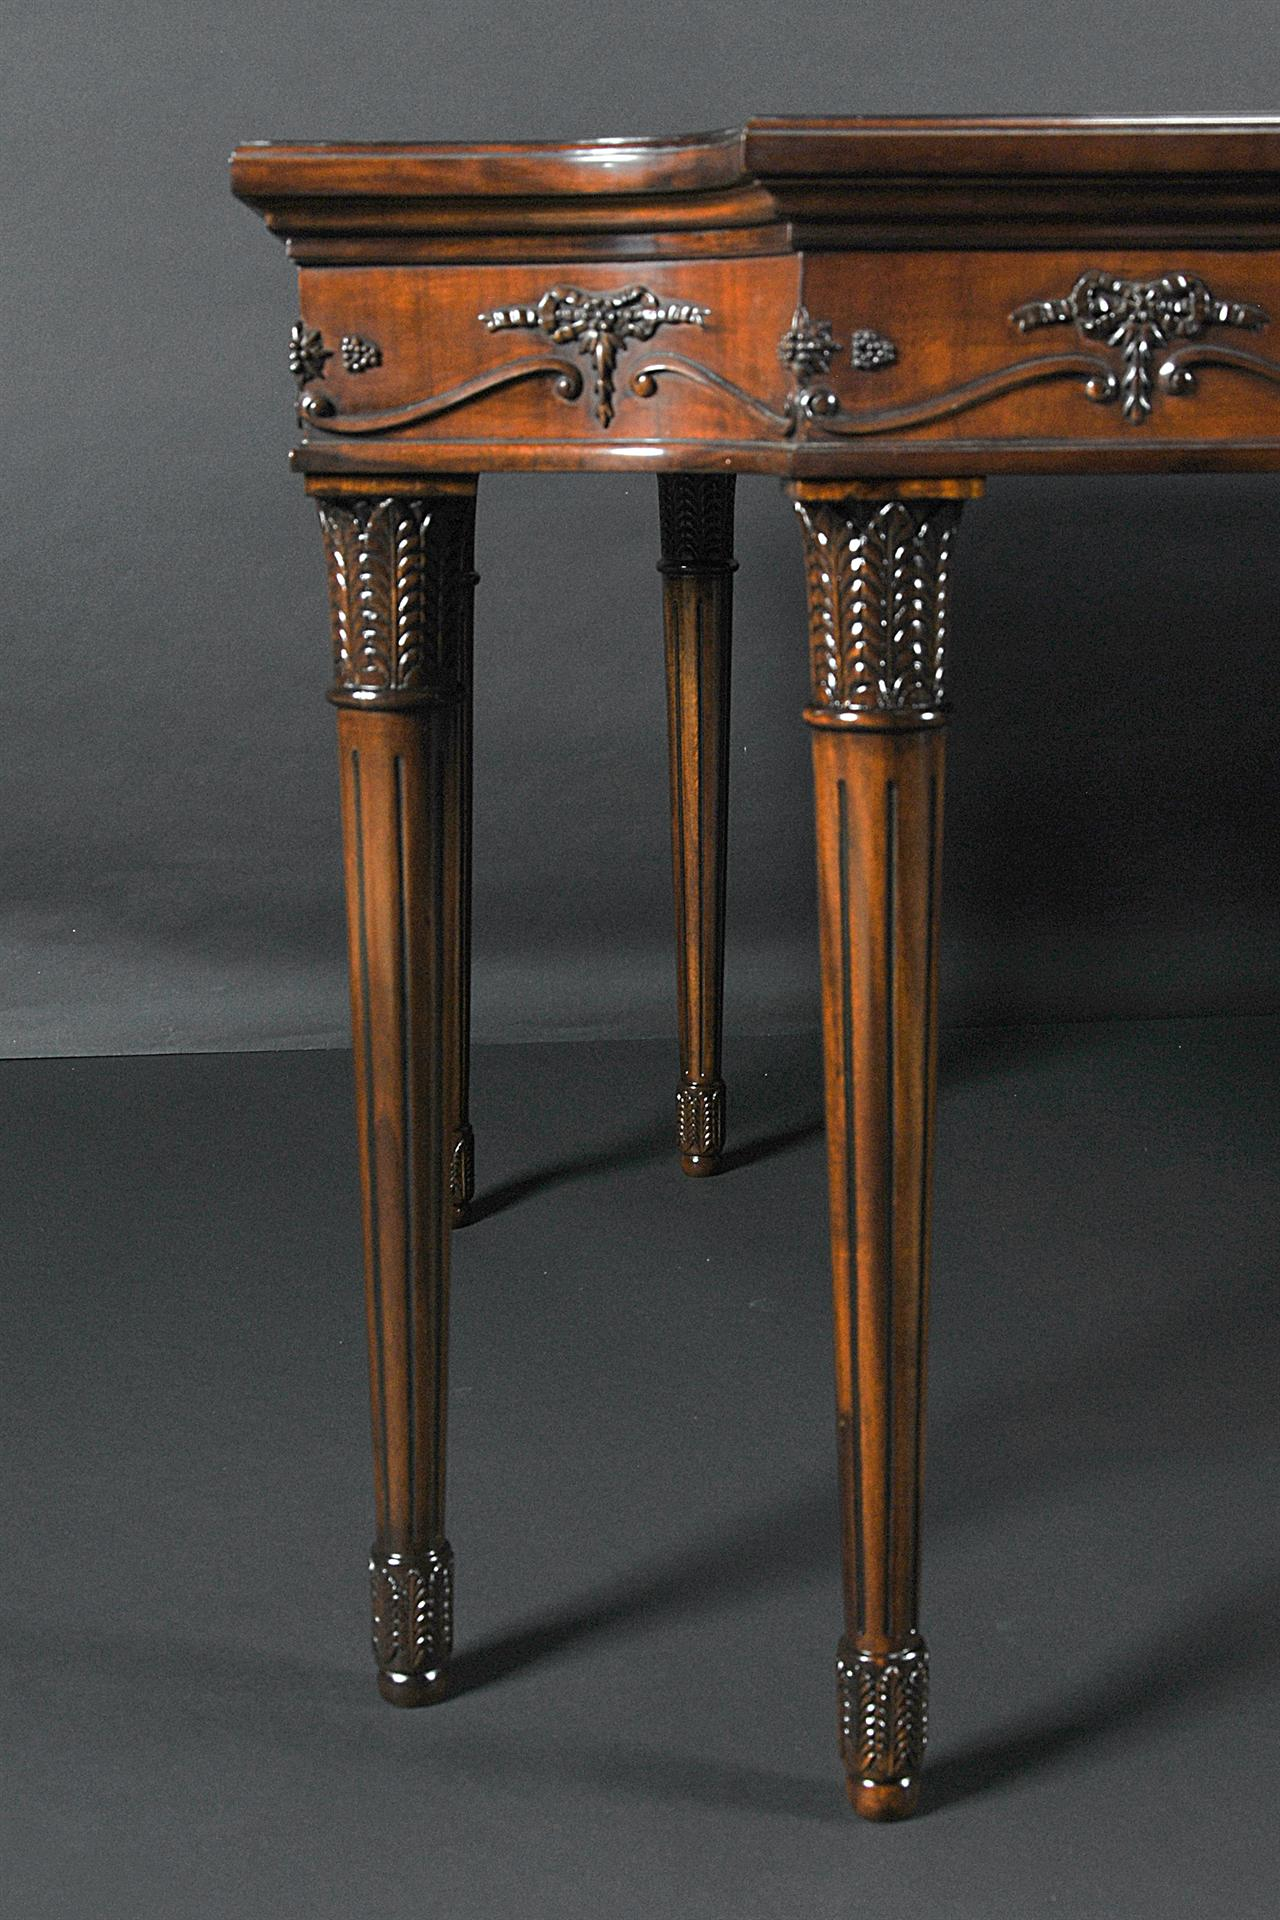 Luois XVI Style Dining Table Legs Make This An Elegant Choice To Coordinate With Classical Furniture